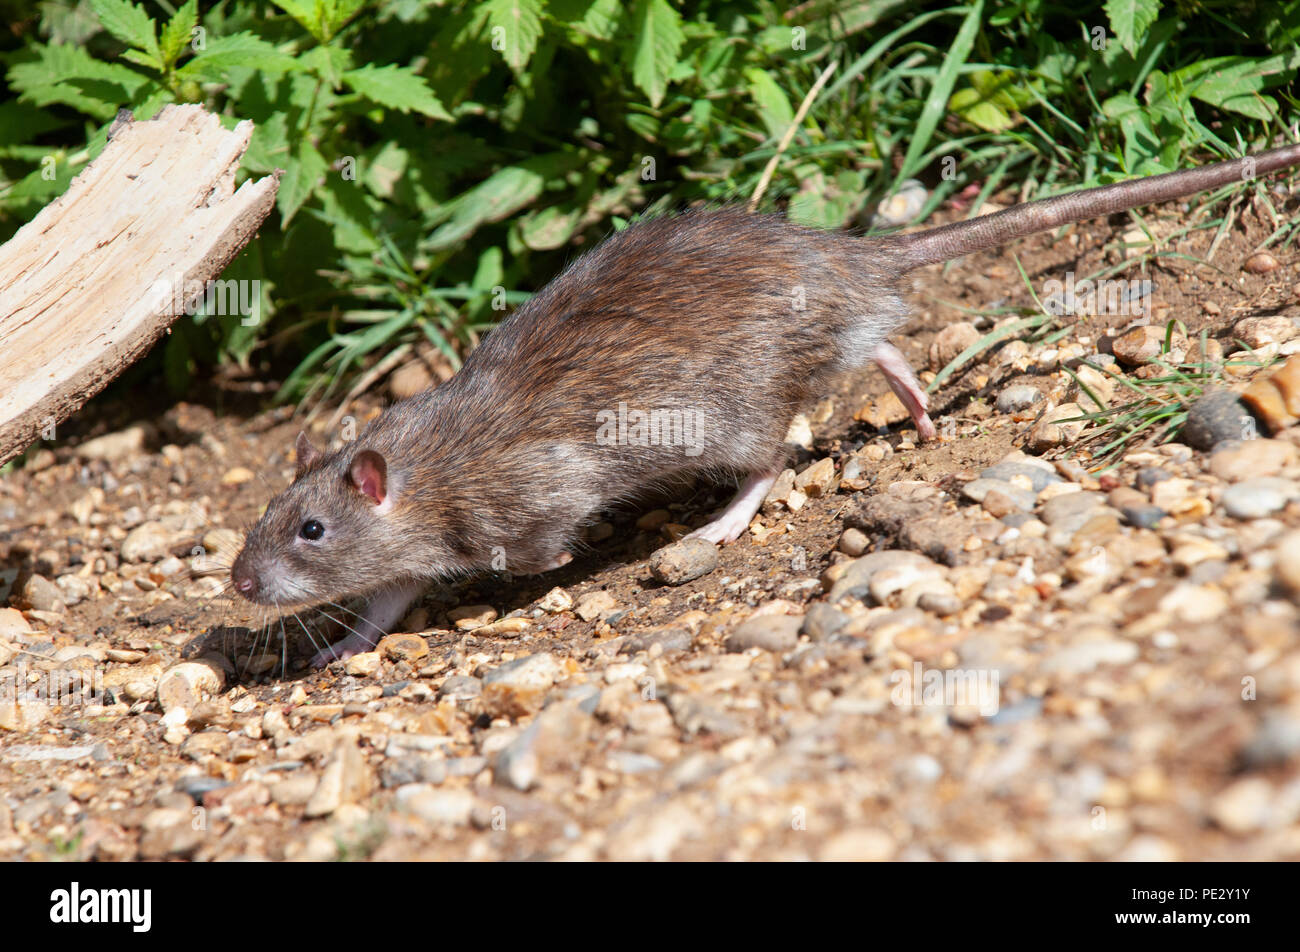 Brown Rat, (Rattus norvegicus), running on banks of Brent Reservoir, also known as Welsh Harp Reservoir, Brent, London, United Kingdom - Stock Image